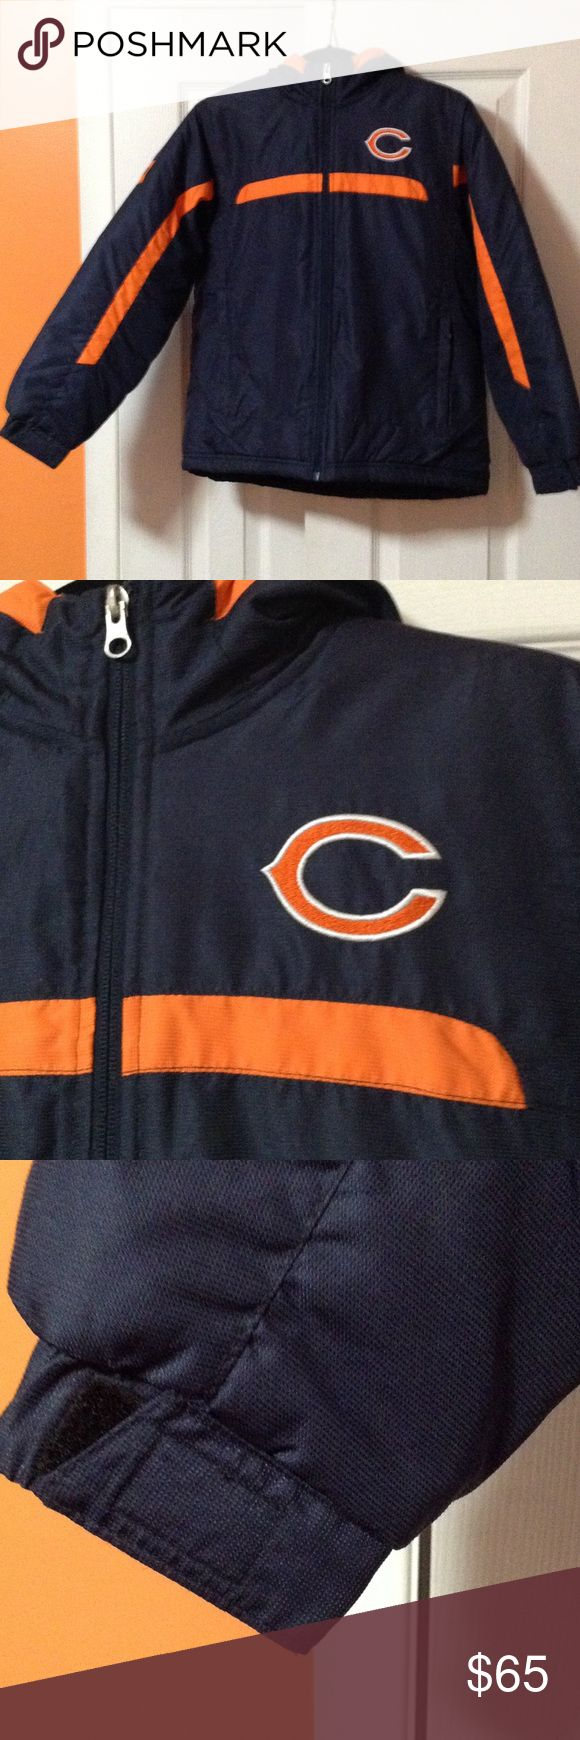 NFL Chicago Bears Youth Jacket 🏈 NFL Chicago Bears Youth Jacket. In Absolutely Great Shape!!! You will be ready for the game and support your Team!!! It's A Youth Medium 10/12 Color is Navy Blue with an Orange trim NFL Jackets & Coats